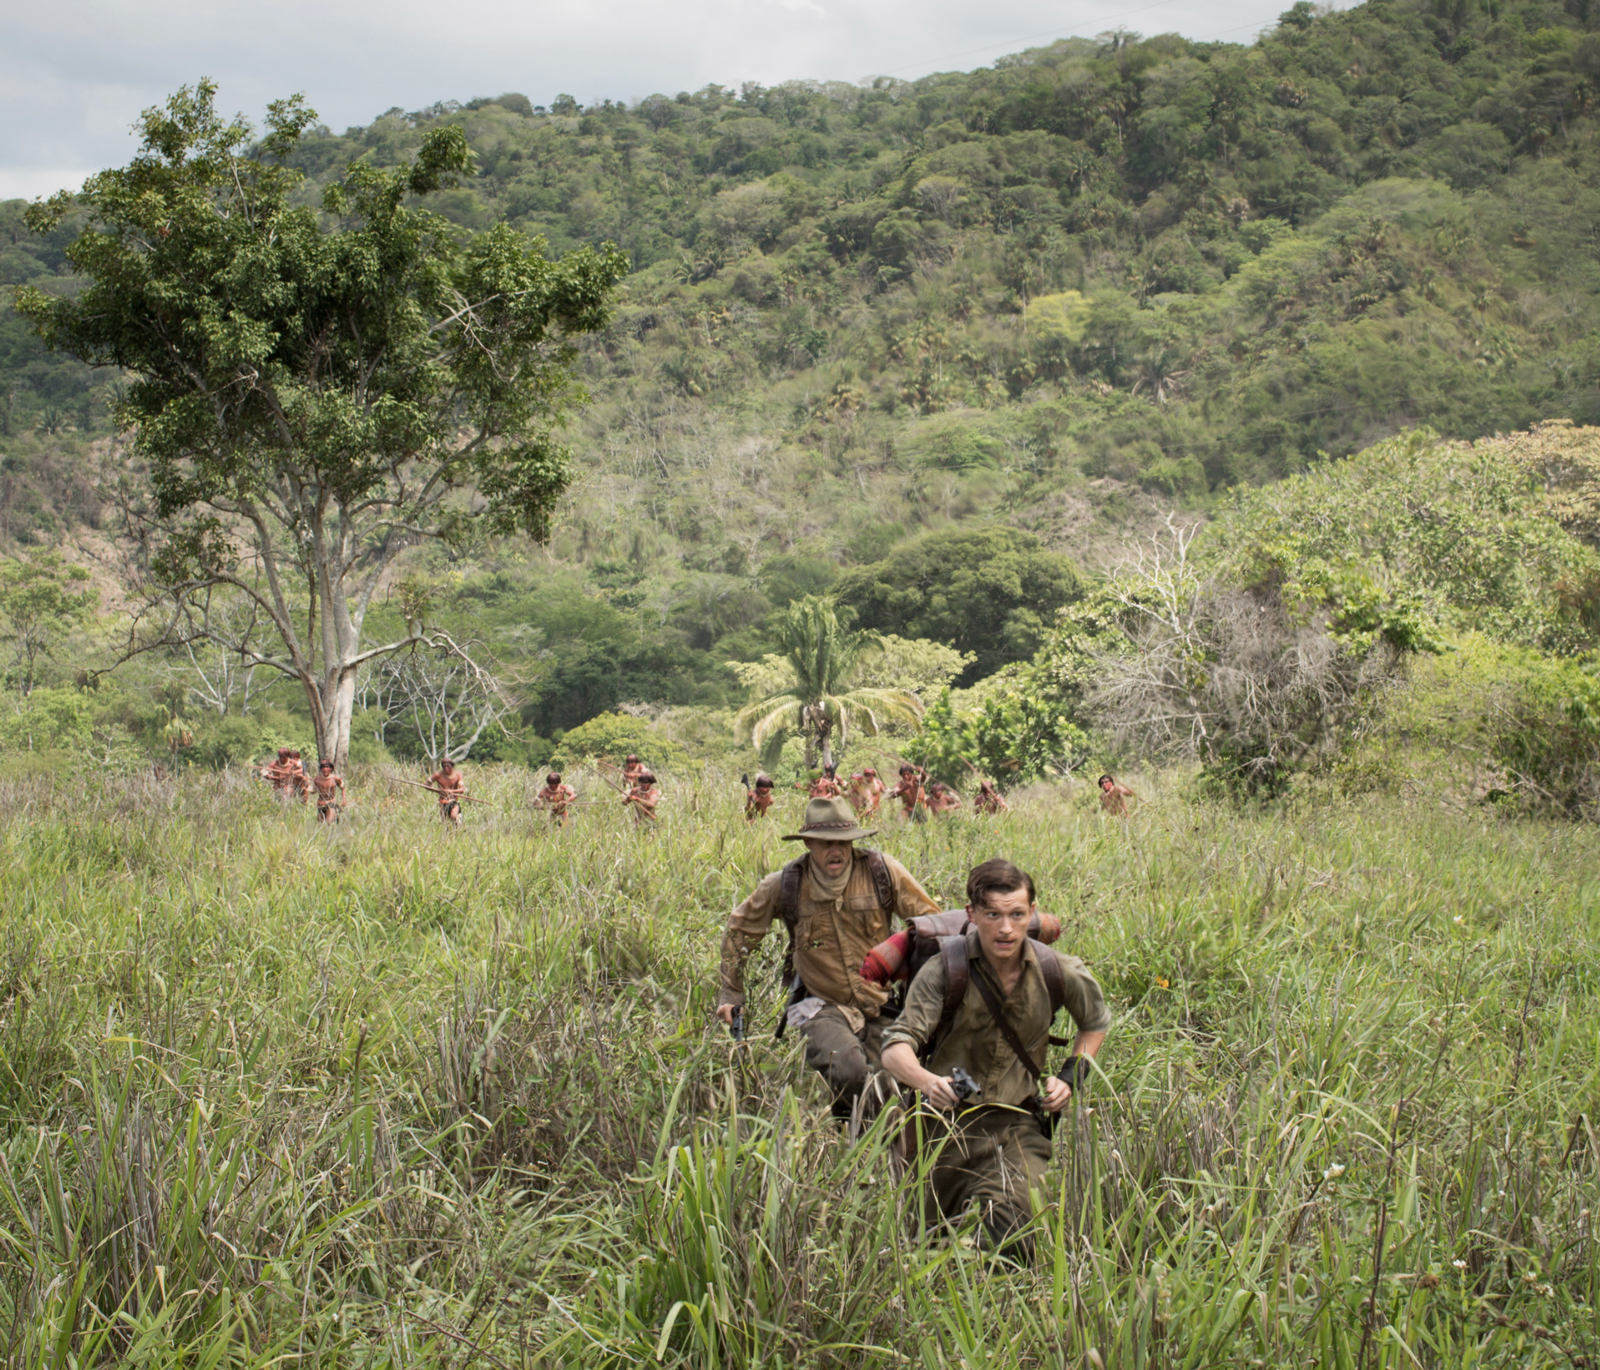 Charlie Hunnam as Percy Fawcett and Tom Holland as Jack Fawcett in James Gray's The Lost City of Z, 2016